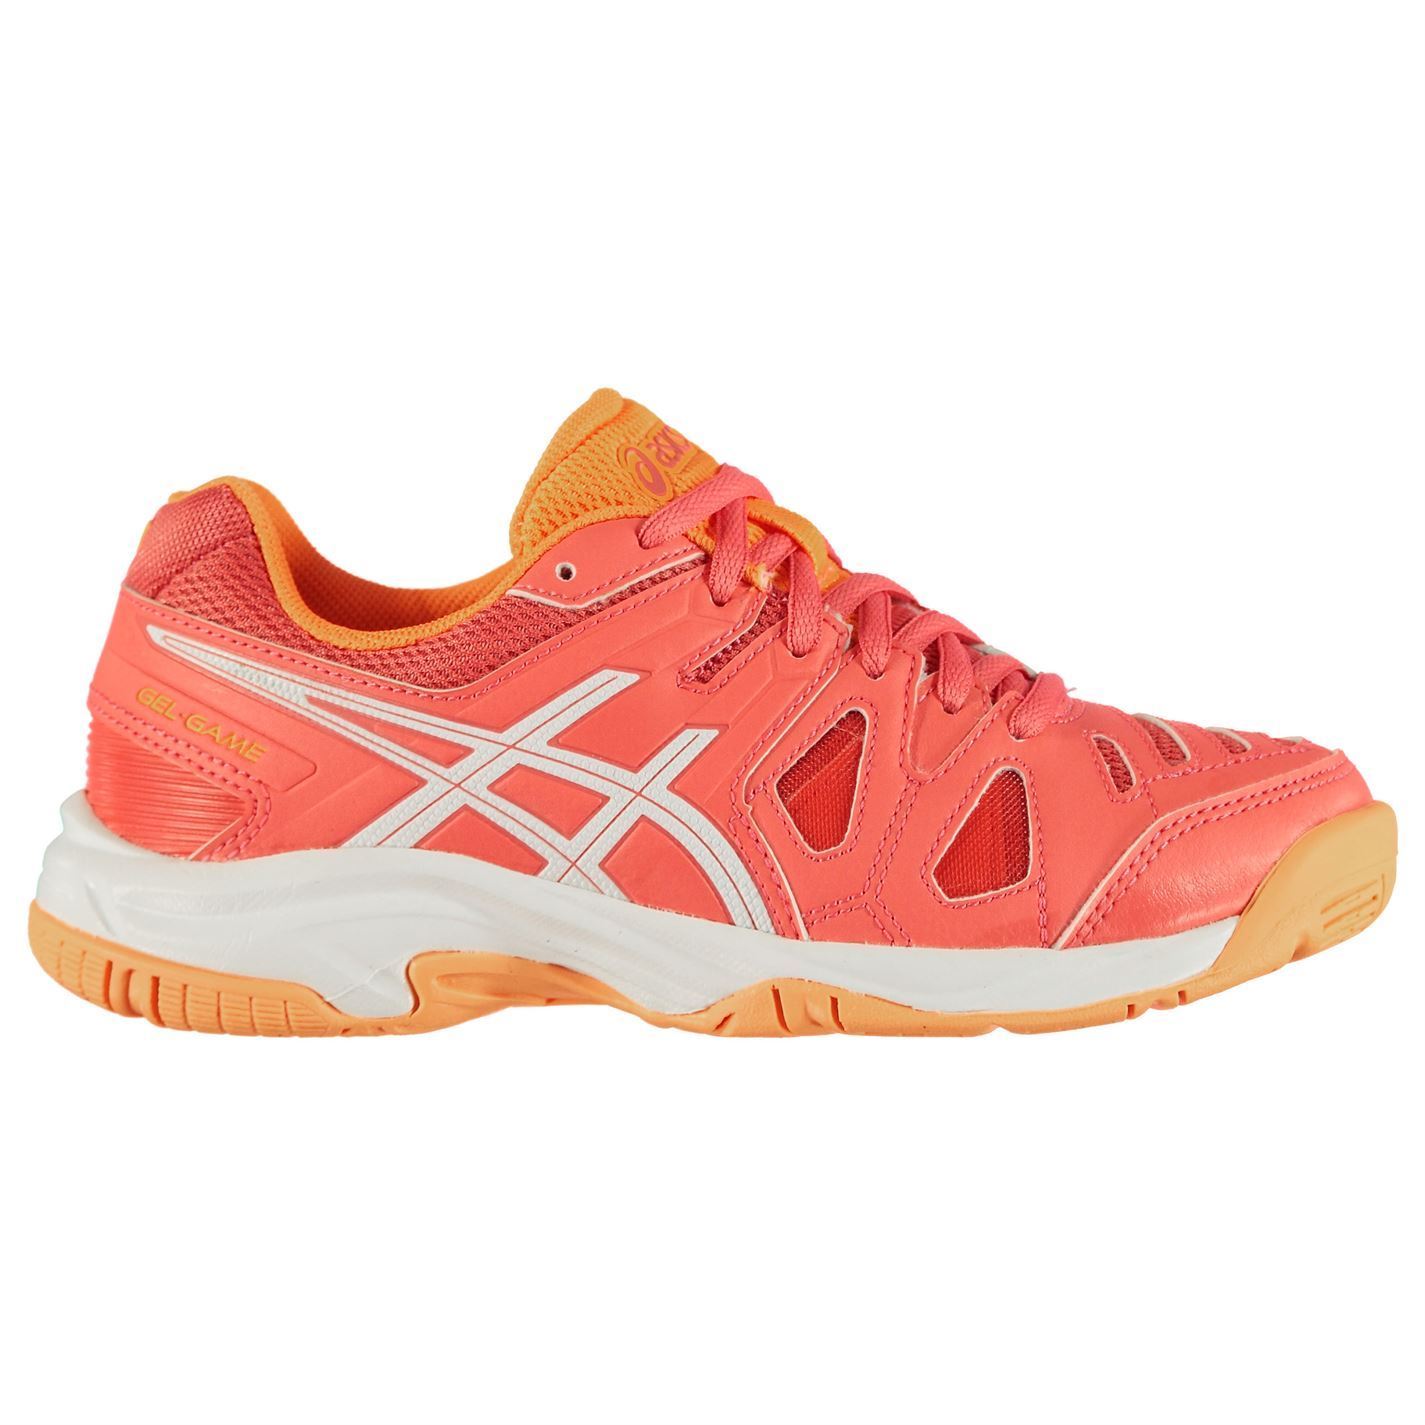 Details about Asics Gel Game 5 Tennis Shoes Juniors Girls CoraliciousWhite Trainers Sneakers